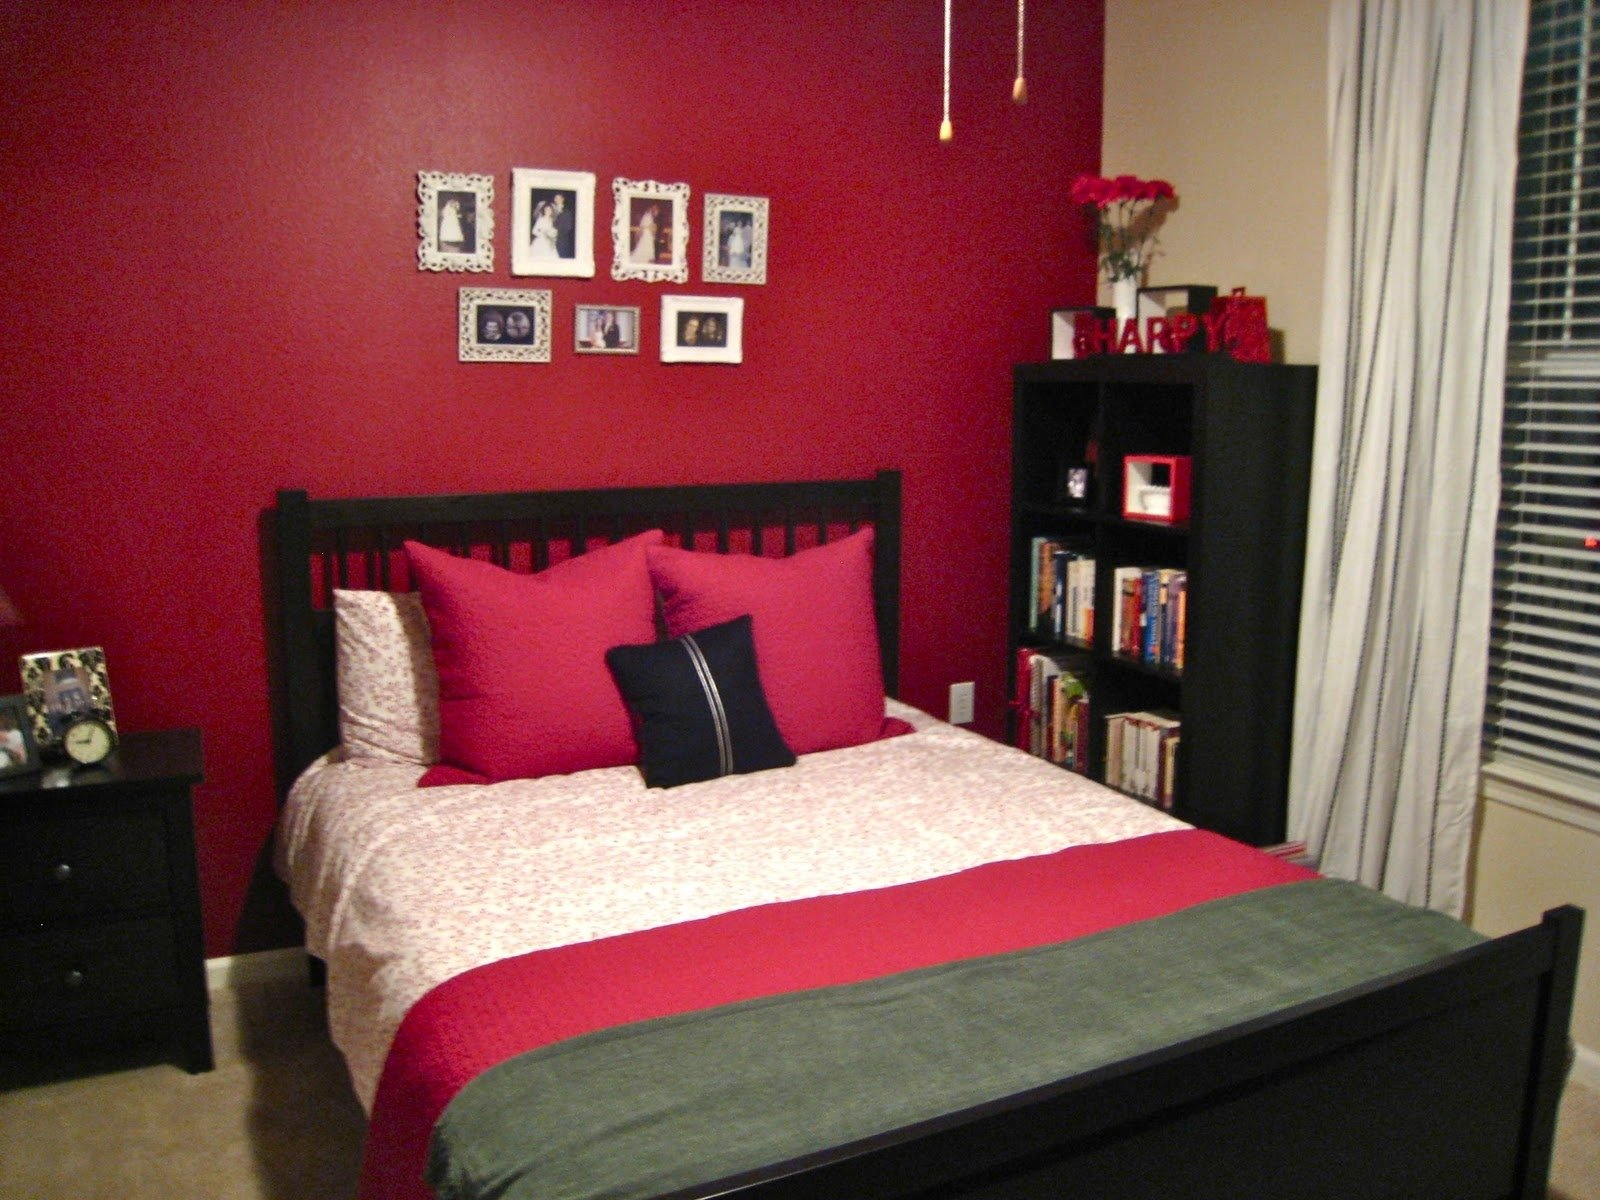 10 Lovely Black White And Red Bedroom Ideas red white bedroom designs elegant pictures of black and red bedroom 1